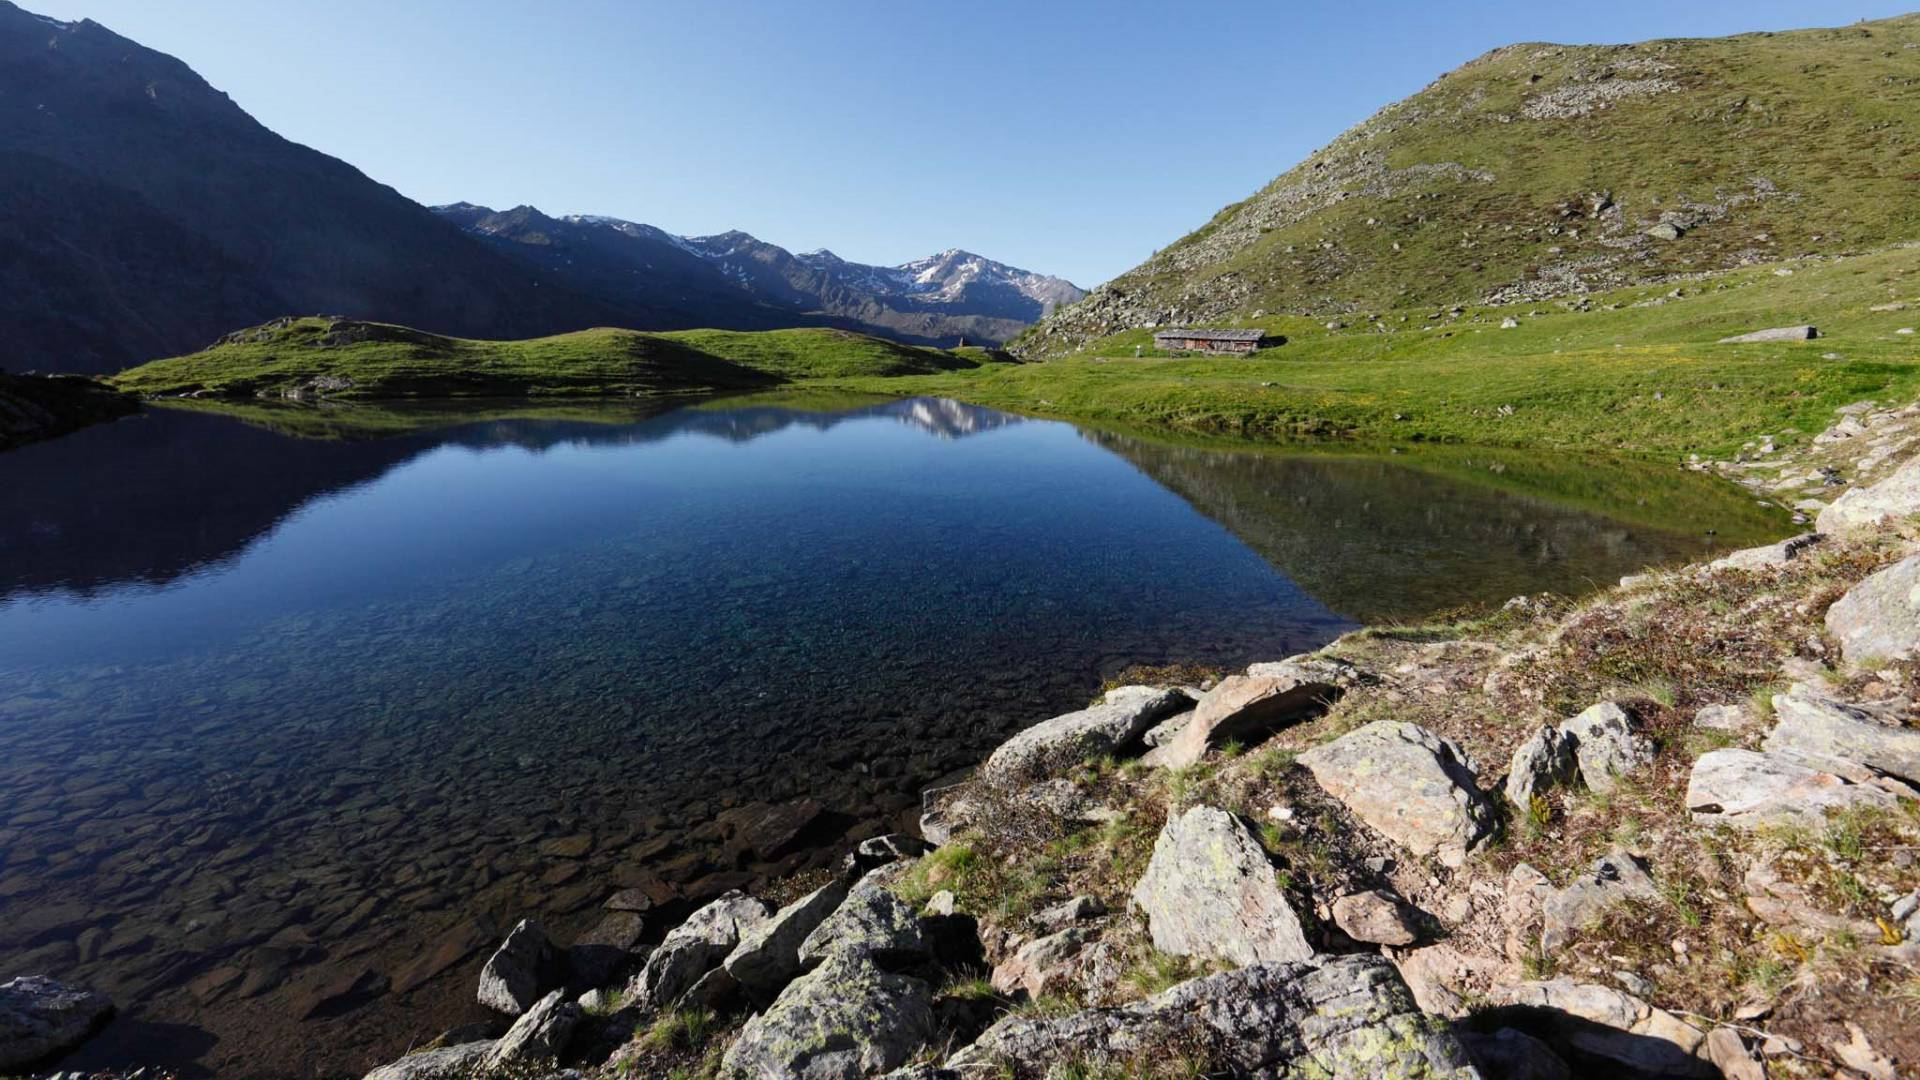 Passiria Hiking Paradise crystal-clear mountain lakes, shady forests, scenting alpine meadows...